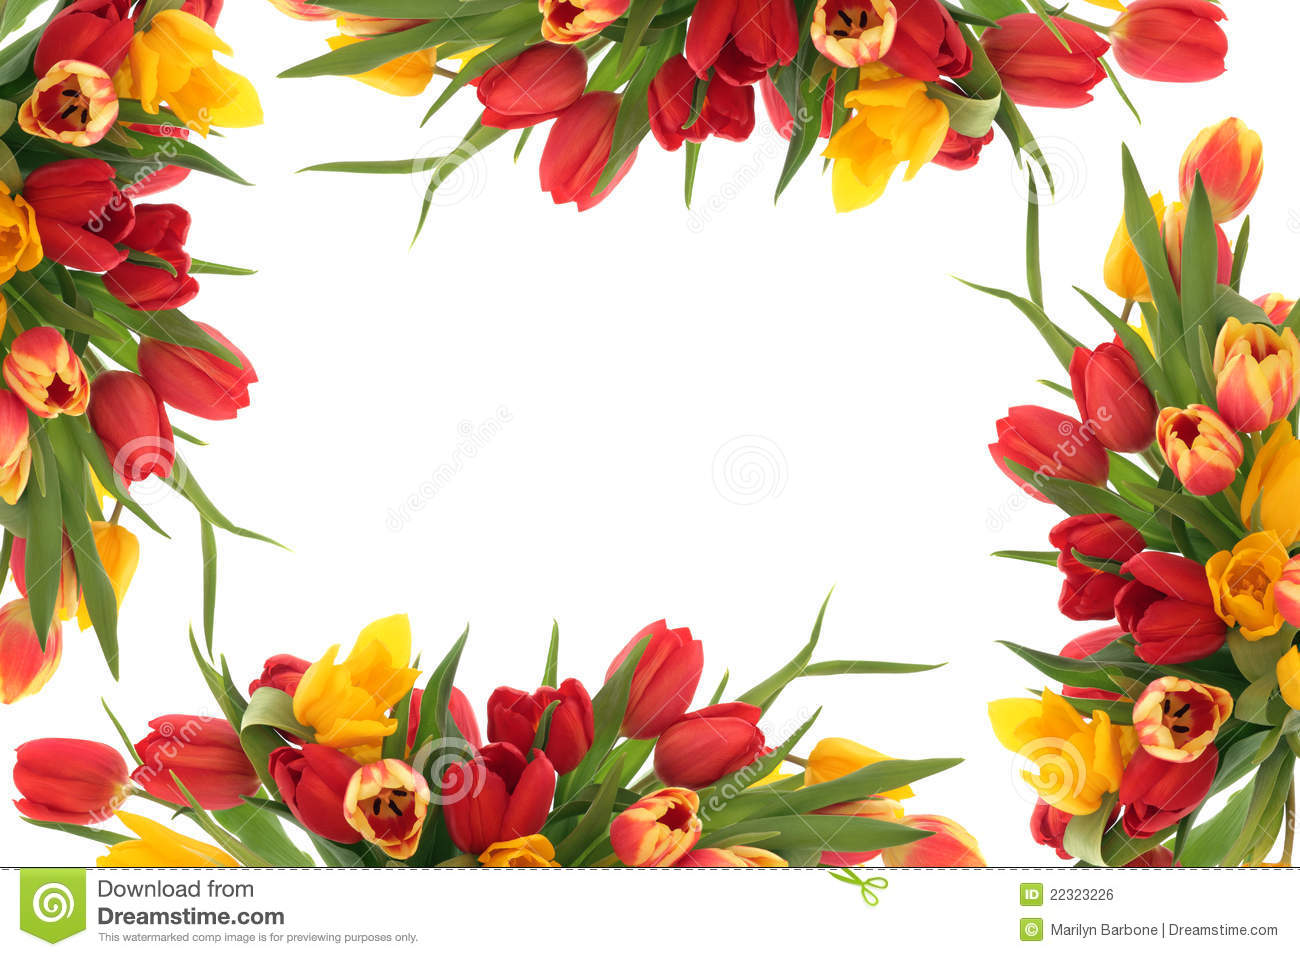 Free pictures of tulips flowers picture transparent library Tulip Flower Border Royalty Free Stock Image - Image: 22323226 picture transparent library